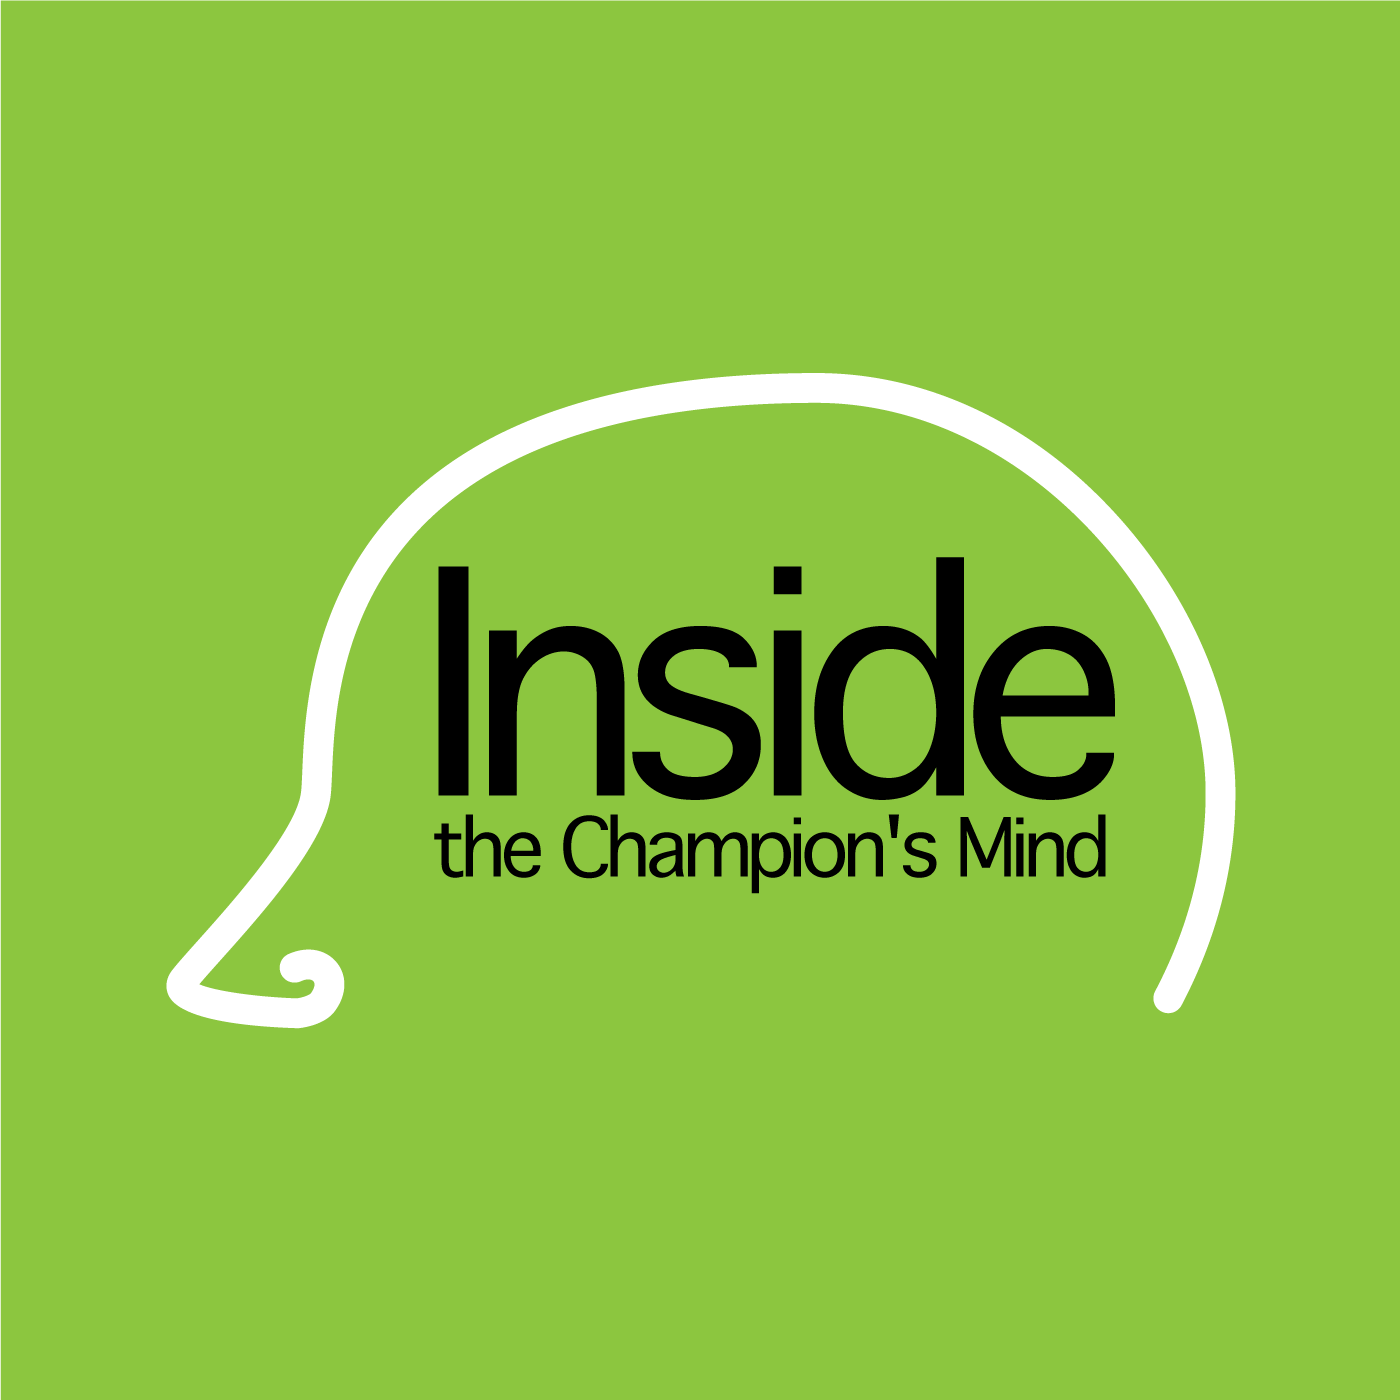 Inside The Champion's Mind